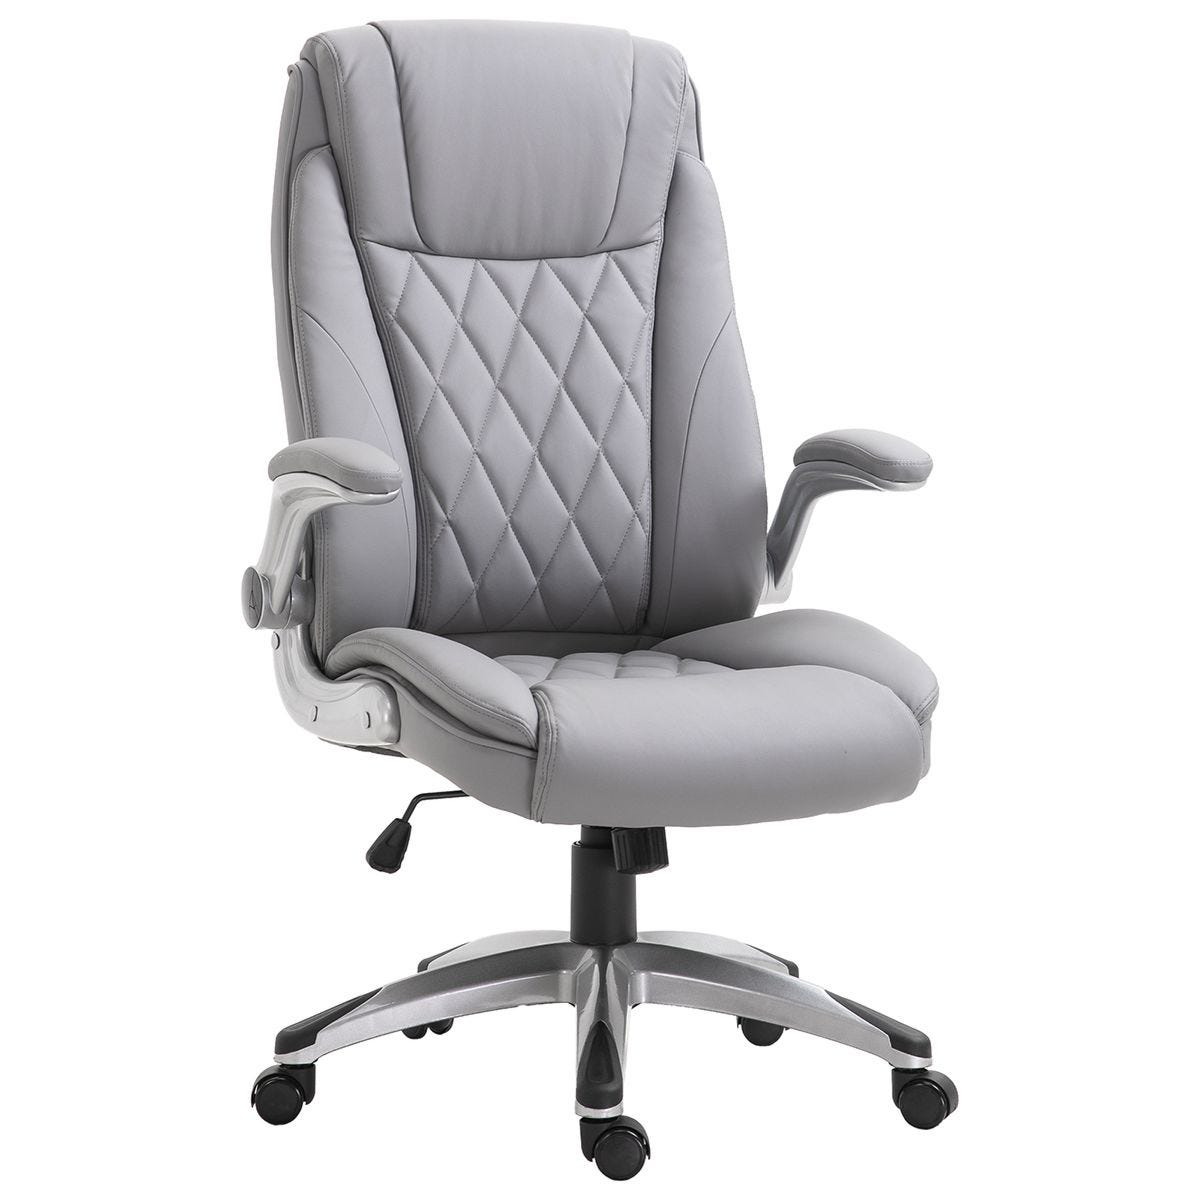 Solstice Galilei Executive Ergonomic PU Leather Office Chair with Headrest & Adjustable Height - Grey